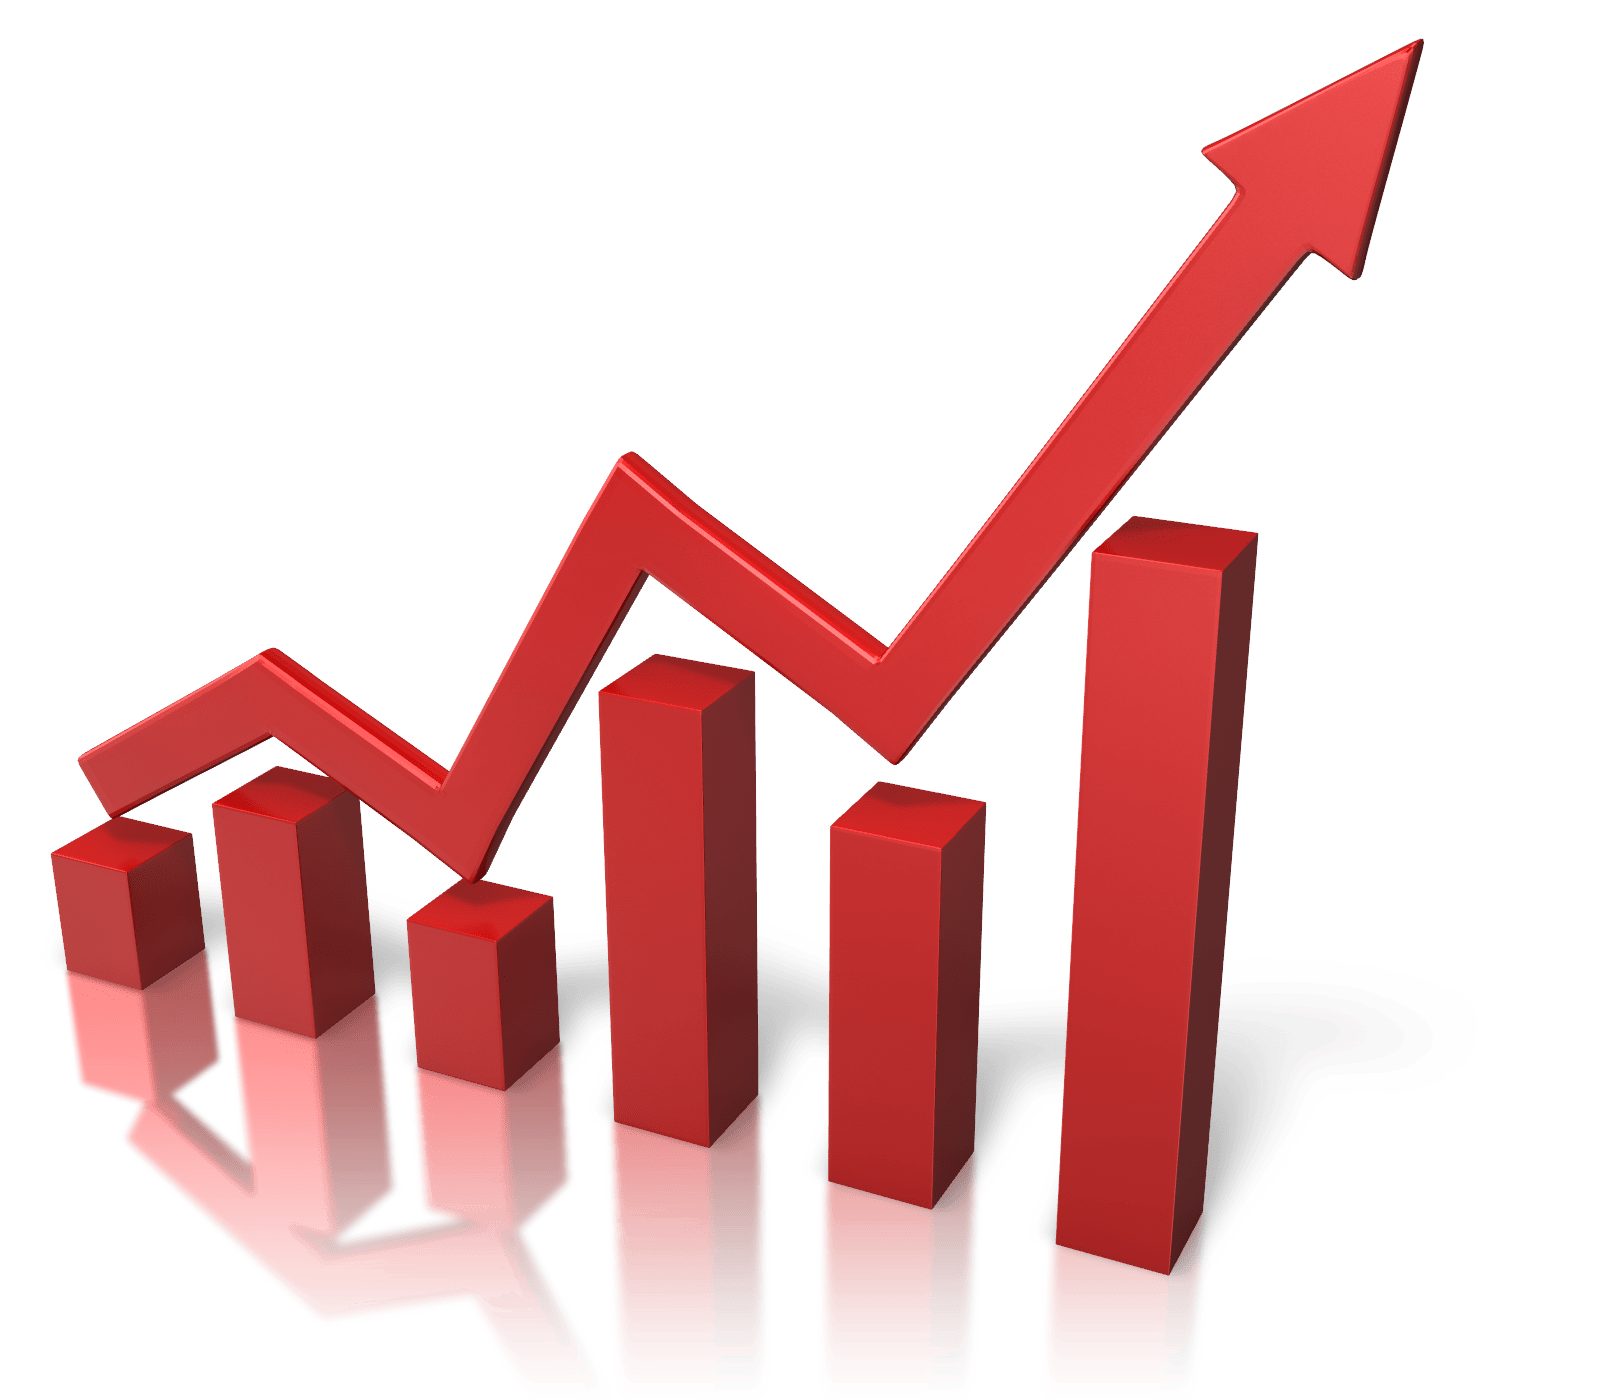 Growth graph png. Red transparent stickpng download